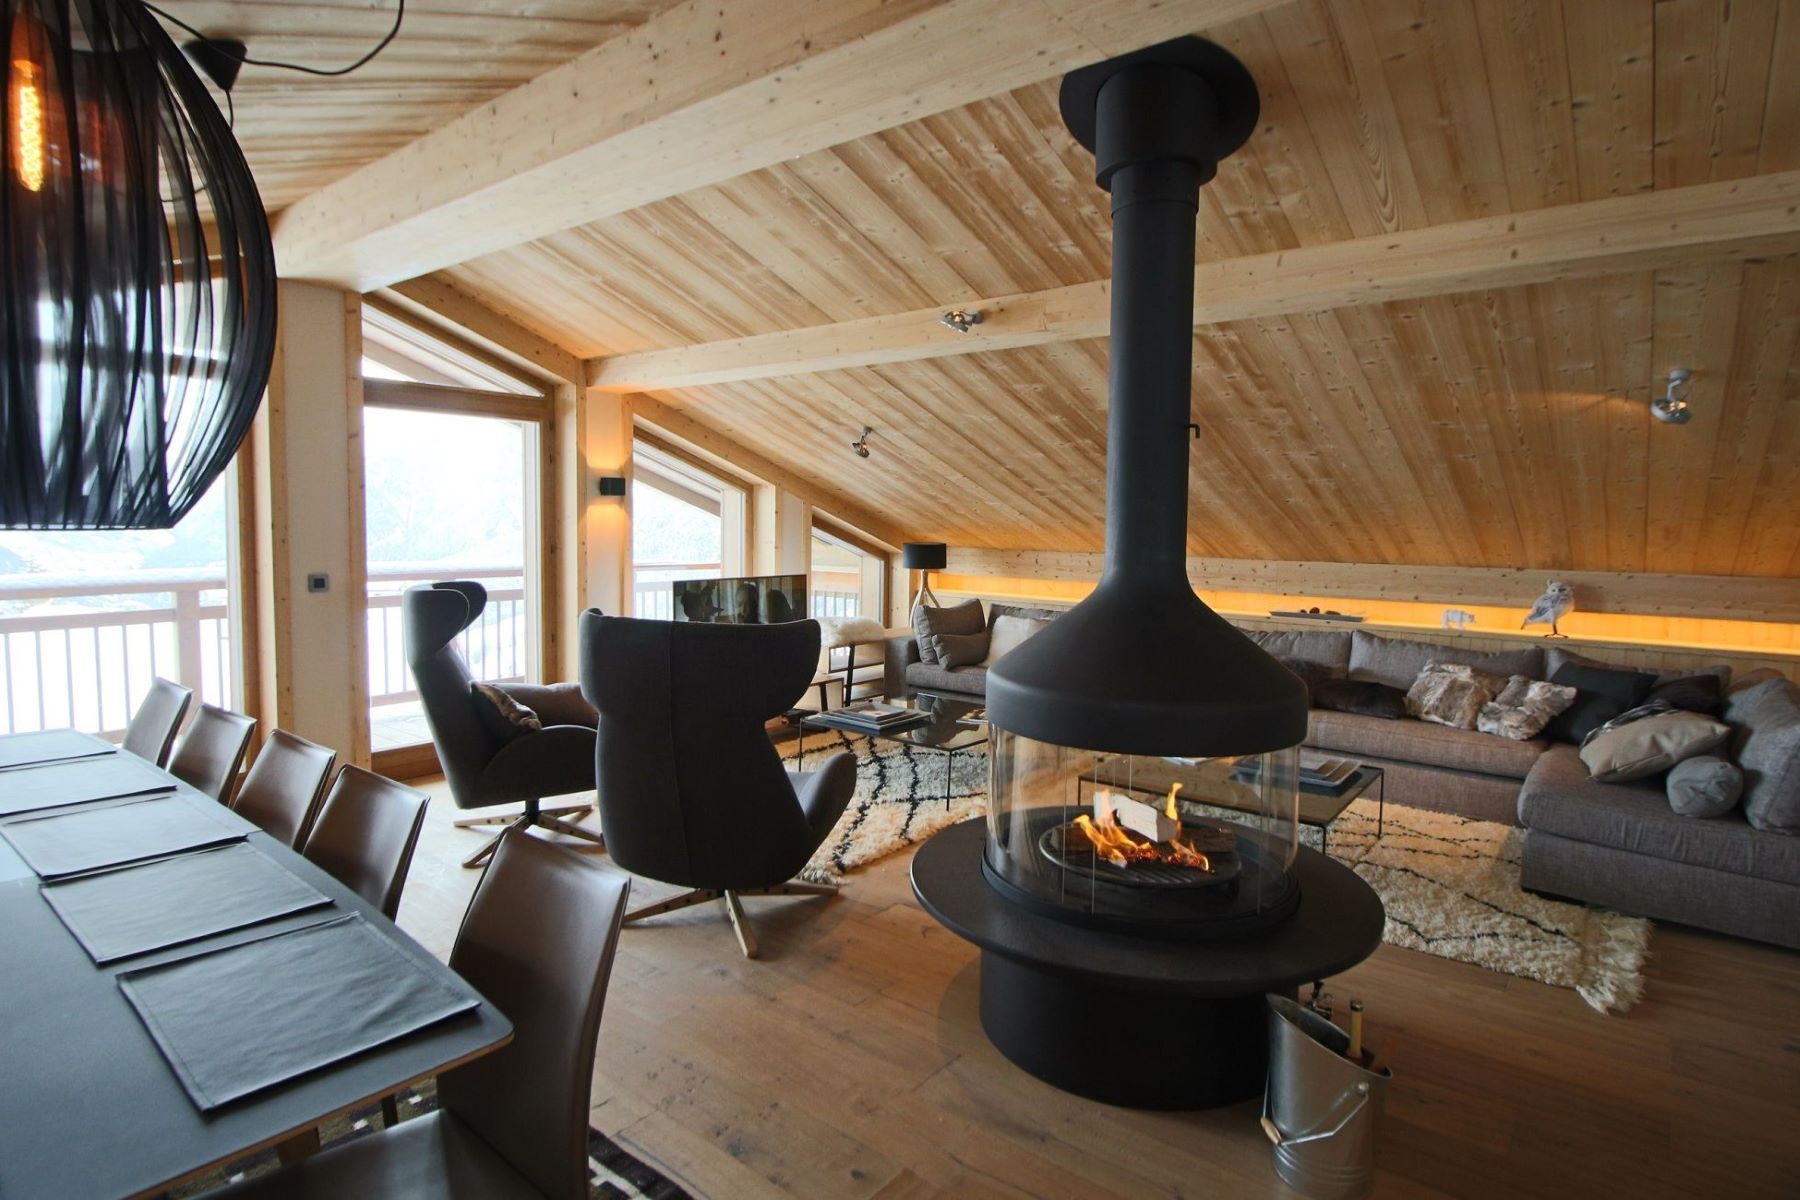 Single Family Home for Sale at Chalet Monch Courchevel Courchevel, Rhone-Alpes, 73120 France